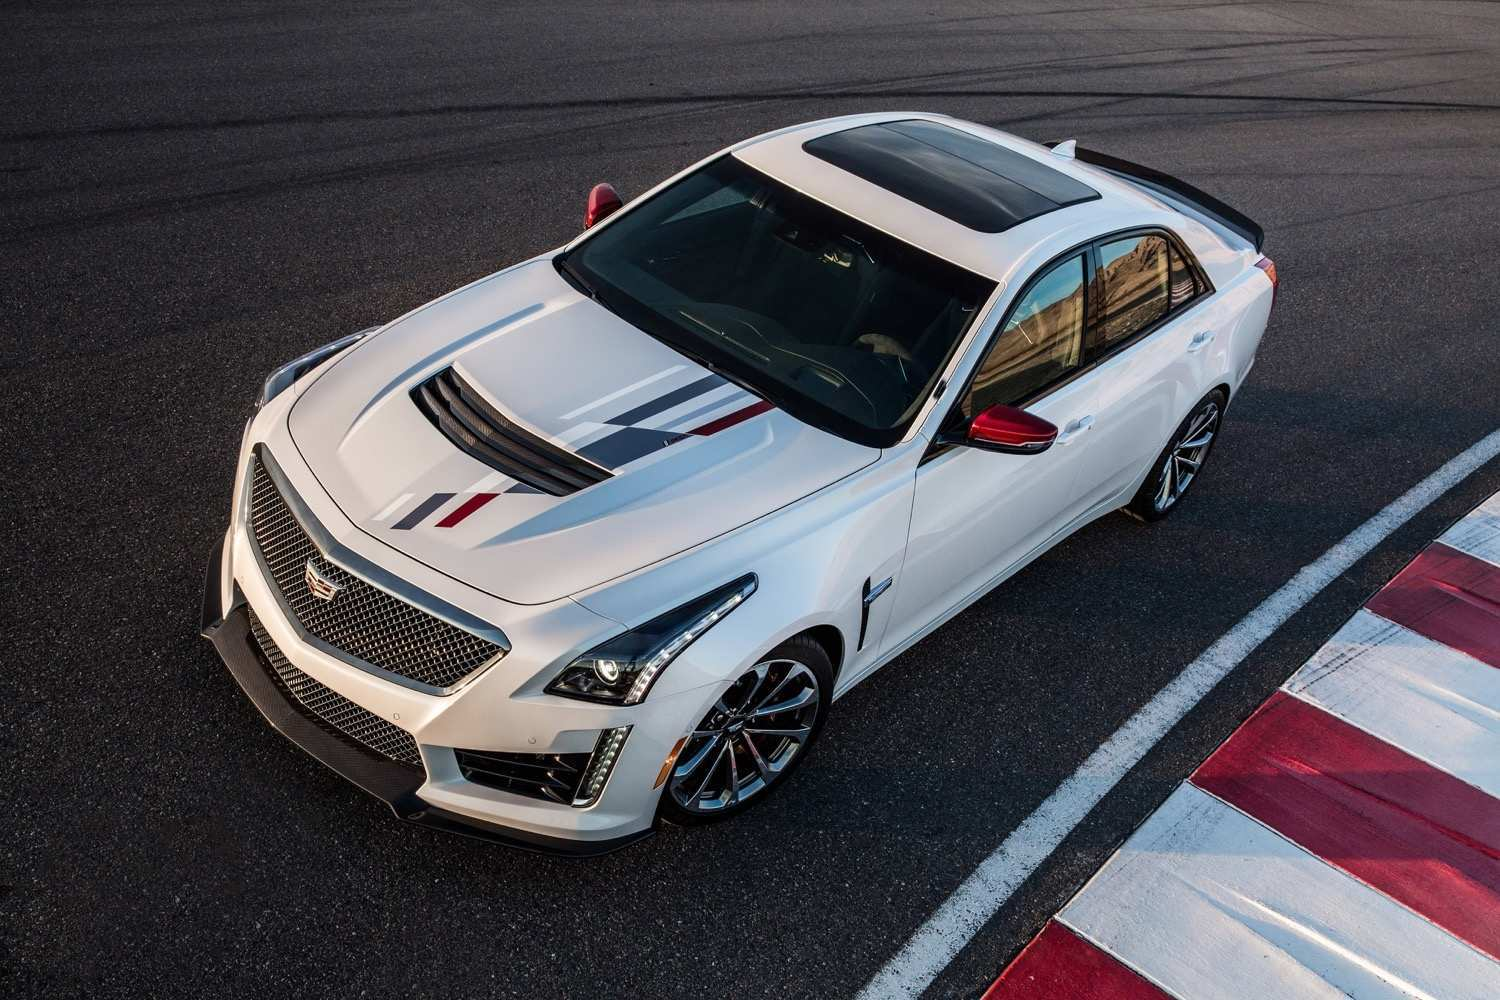 97 Concept of 2019 Cadillac Reviews Specs Redesign and Concept by 2019 Cadillac Reviews Specs